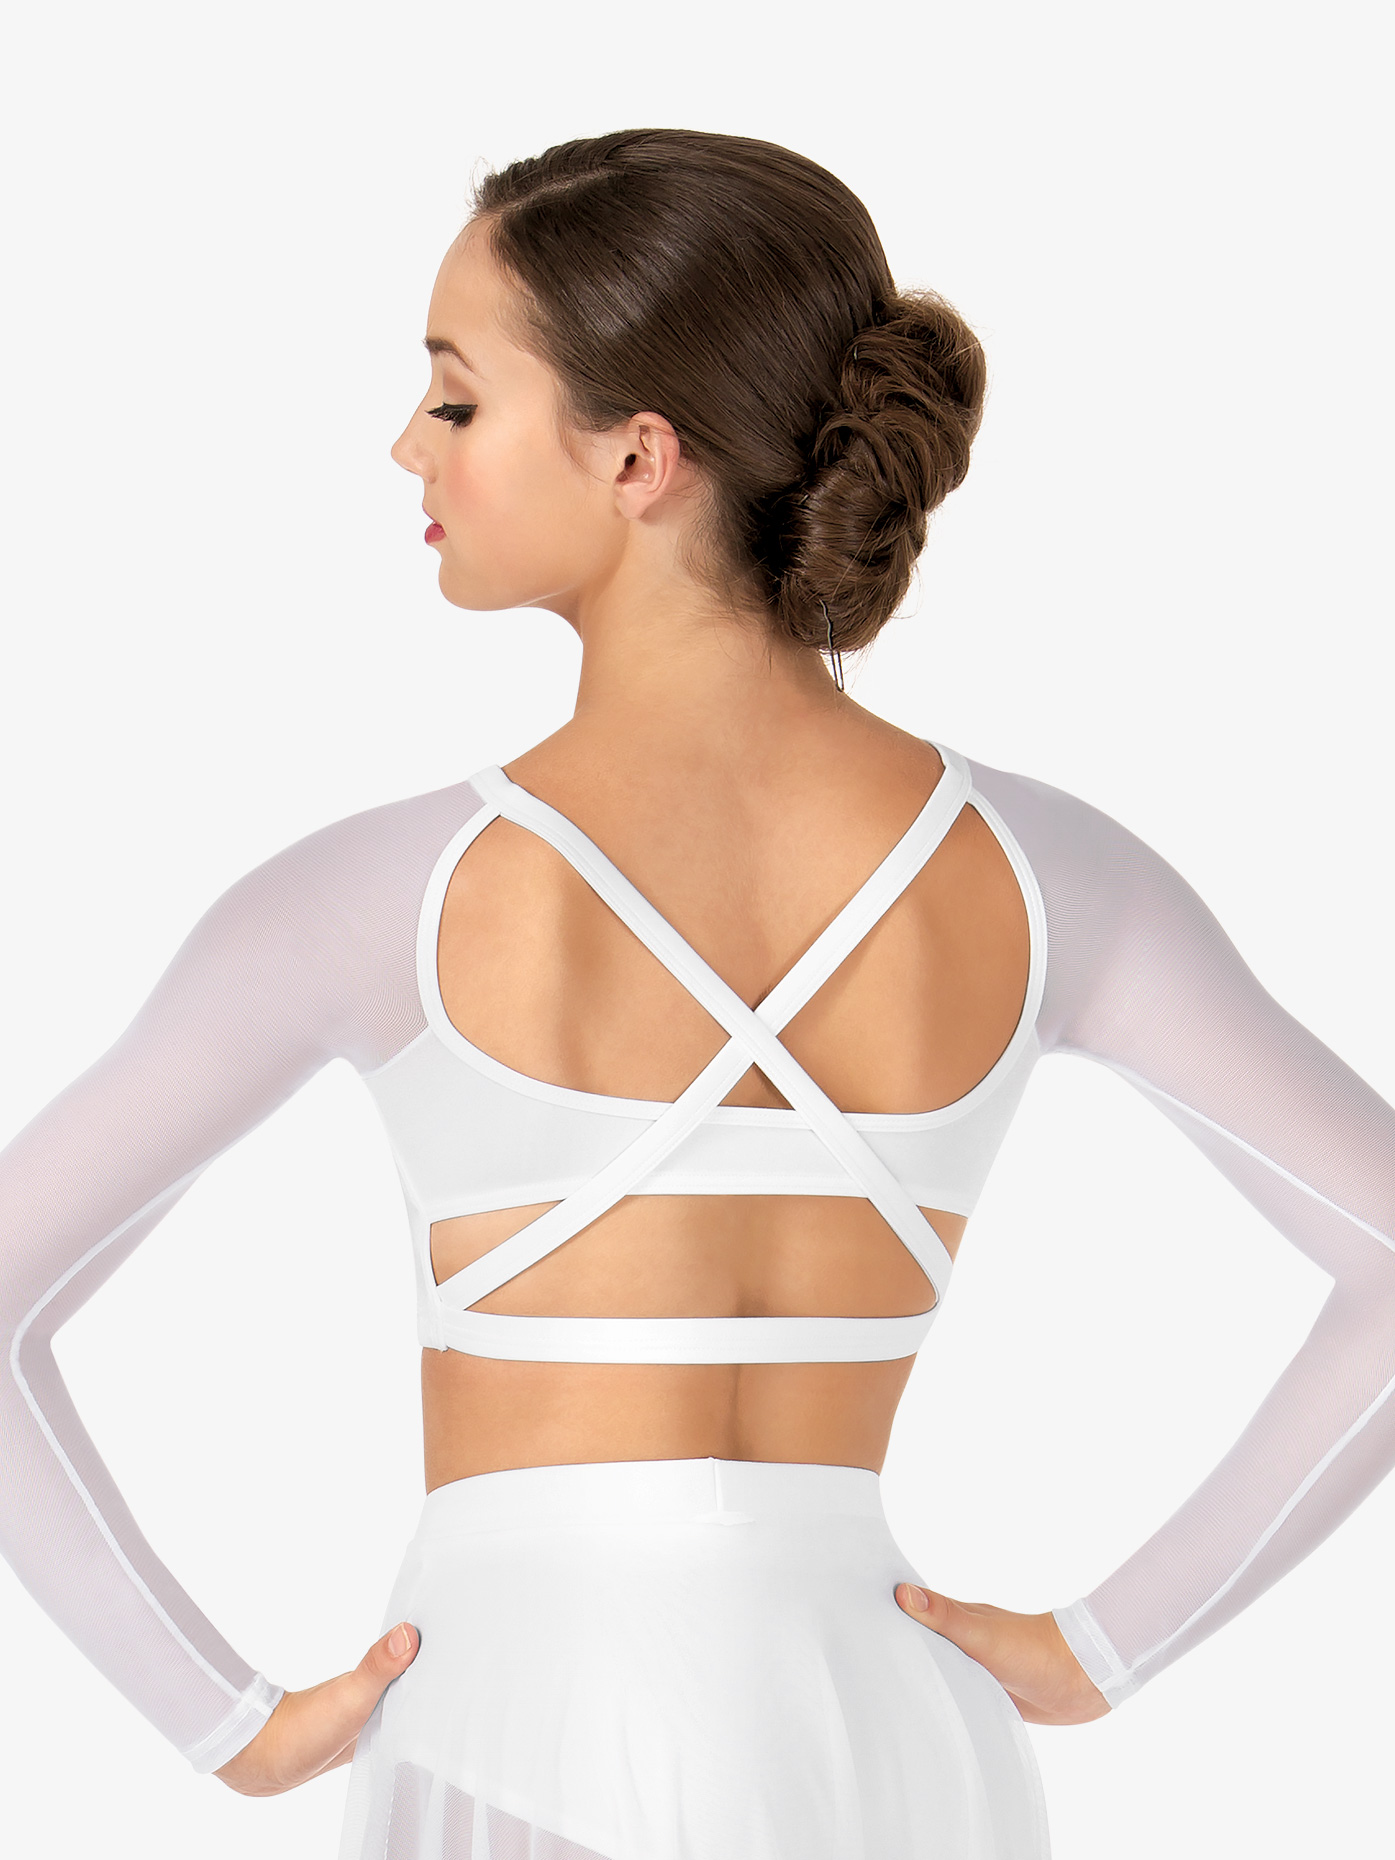 1a67f3c6a697b Adult Long Sleeve X-Back Dance Crop Top - Style No NL9020. Loading zoom